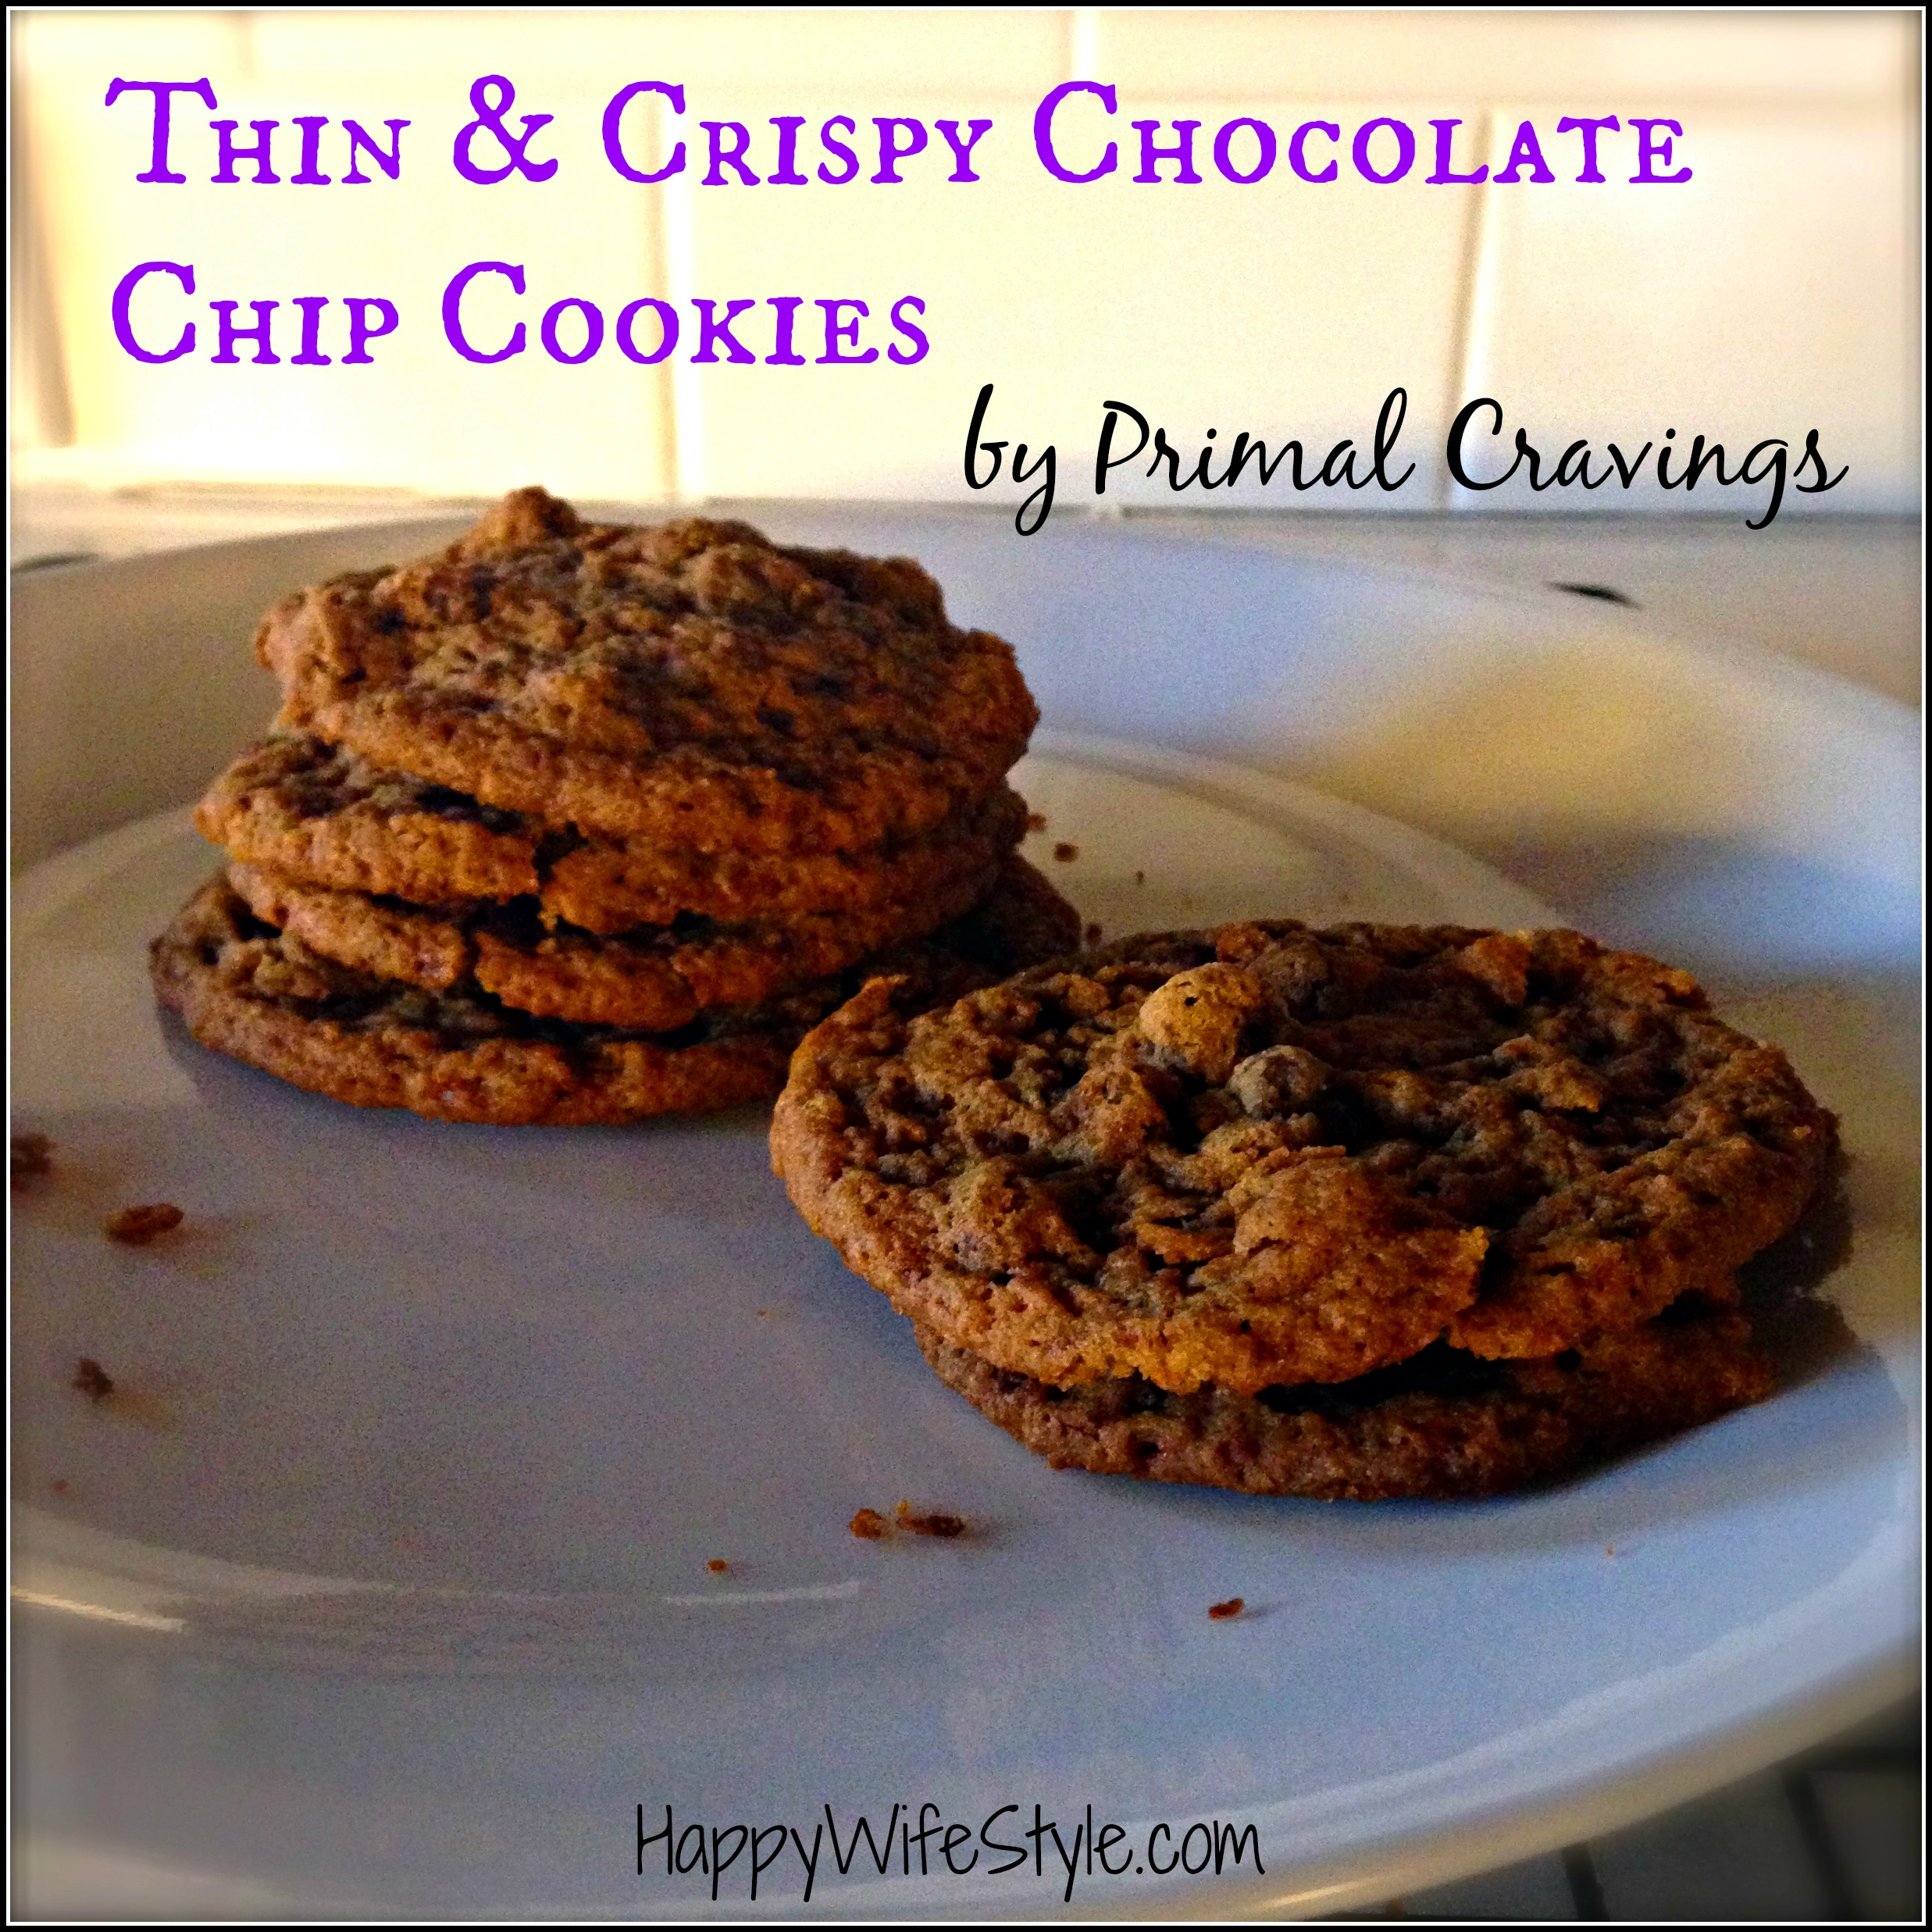 thin-and-crispy-chocolate-chip-cookies